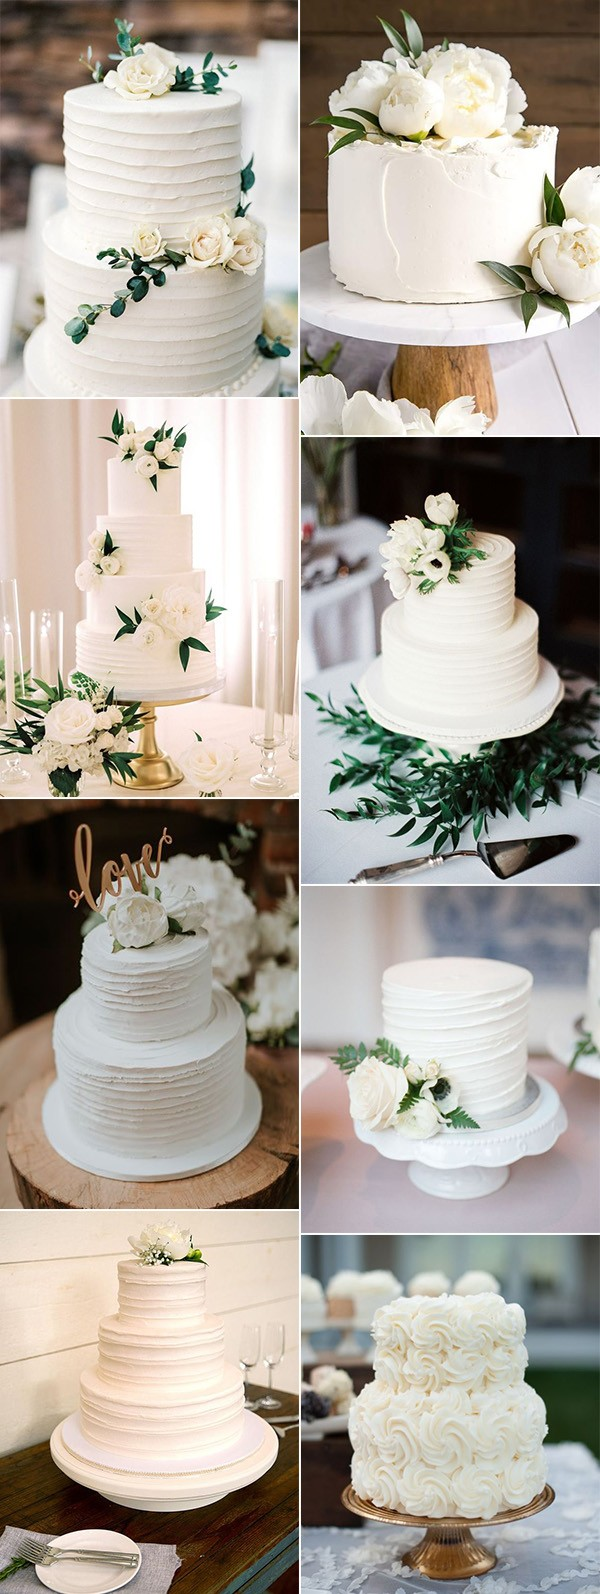 simple elegant white and green wedding cakes for spring summer 2019